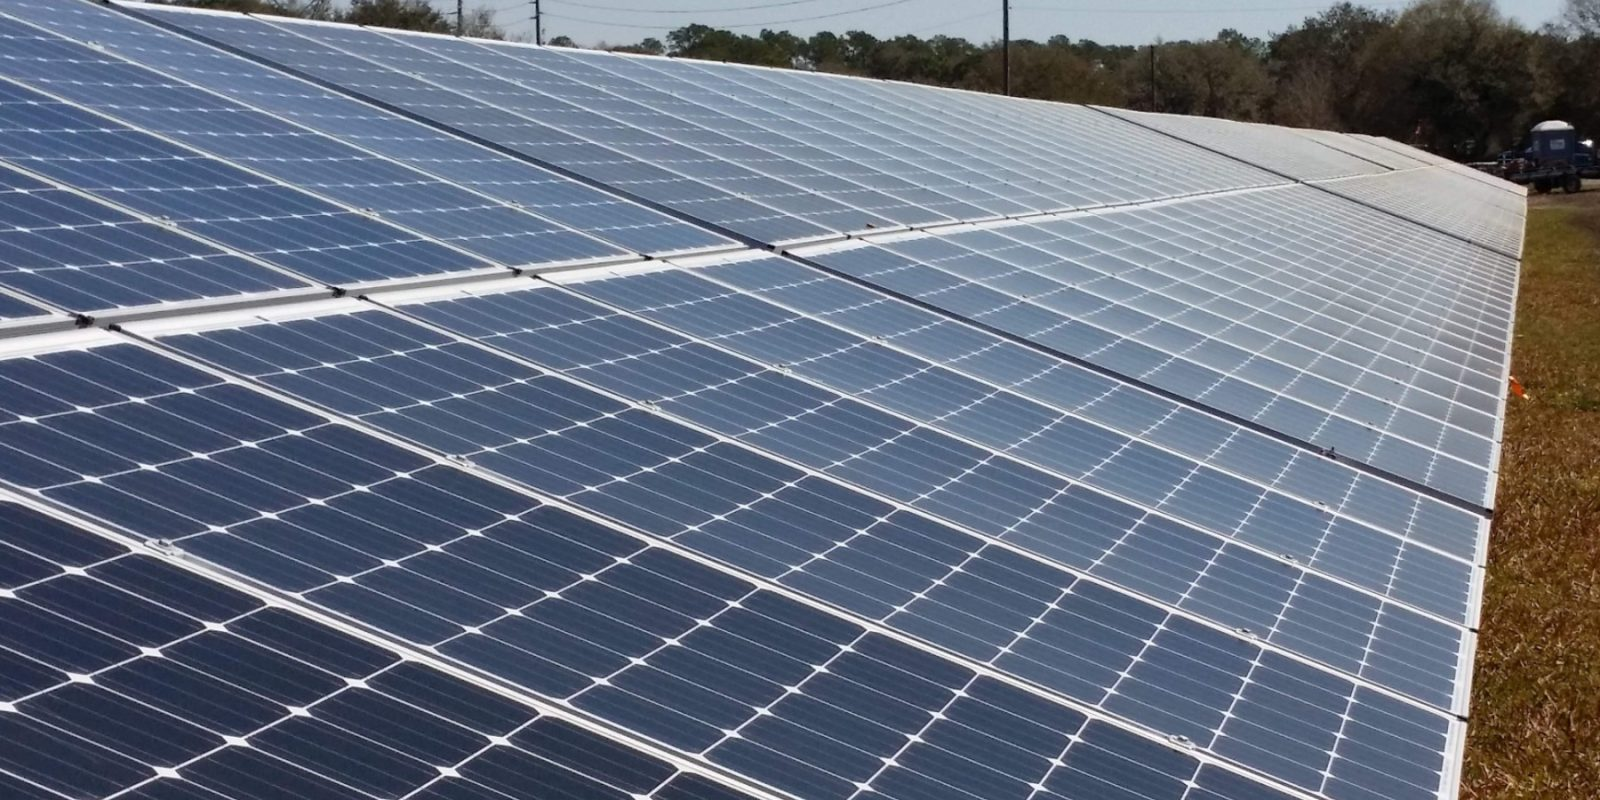 Duke Energy to build two new Florida solar plants that will power 46K homes